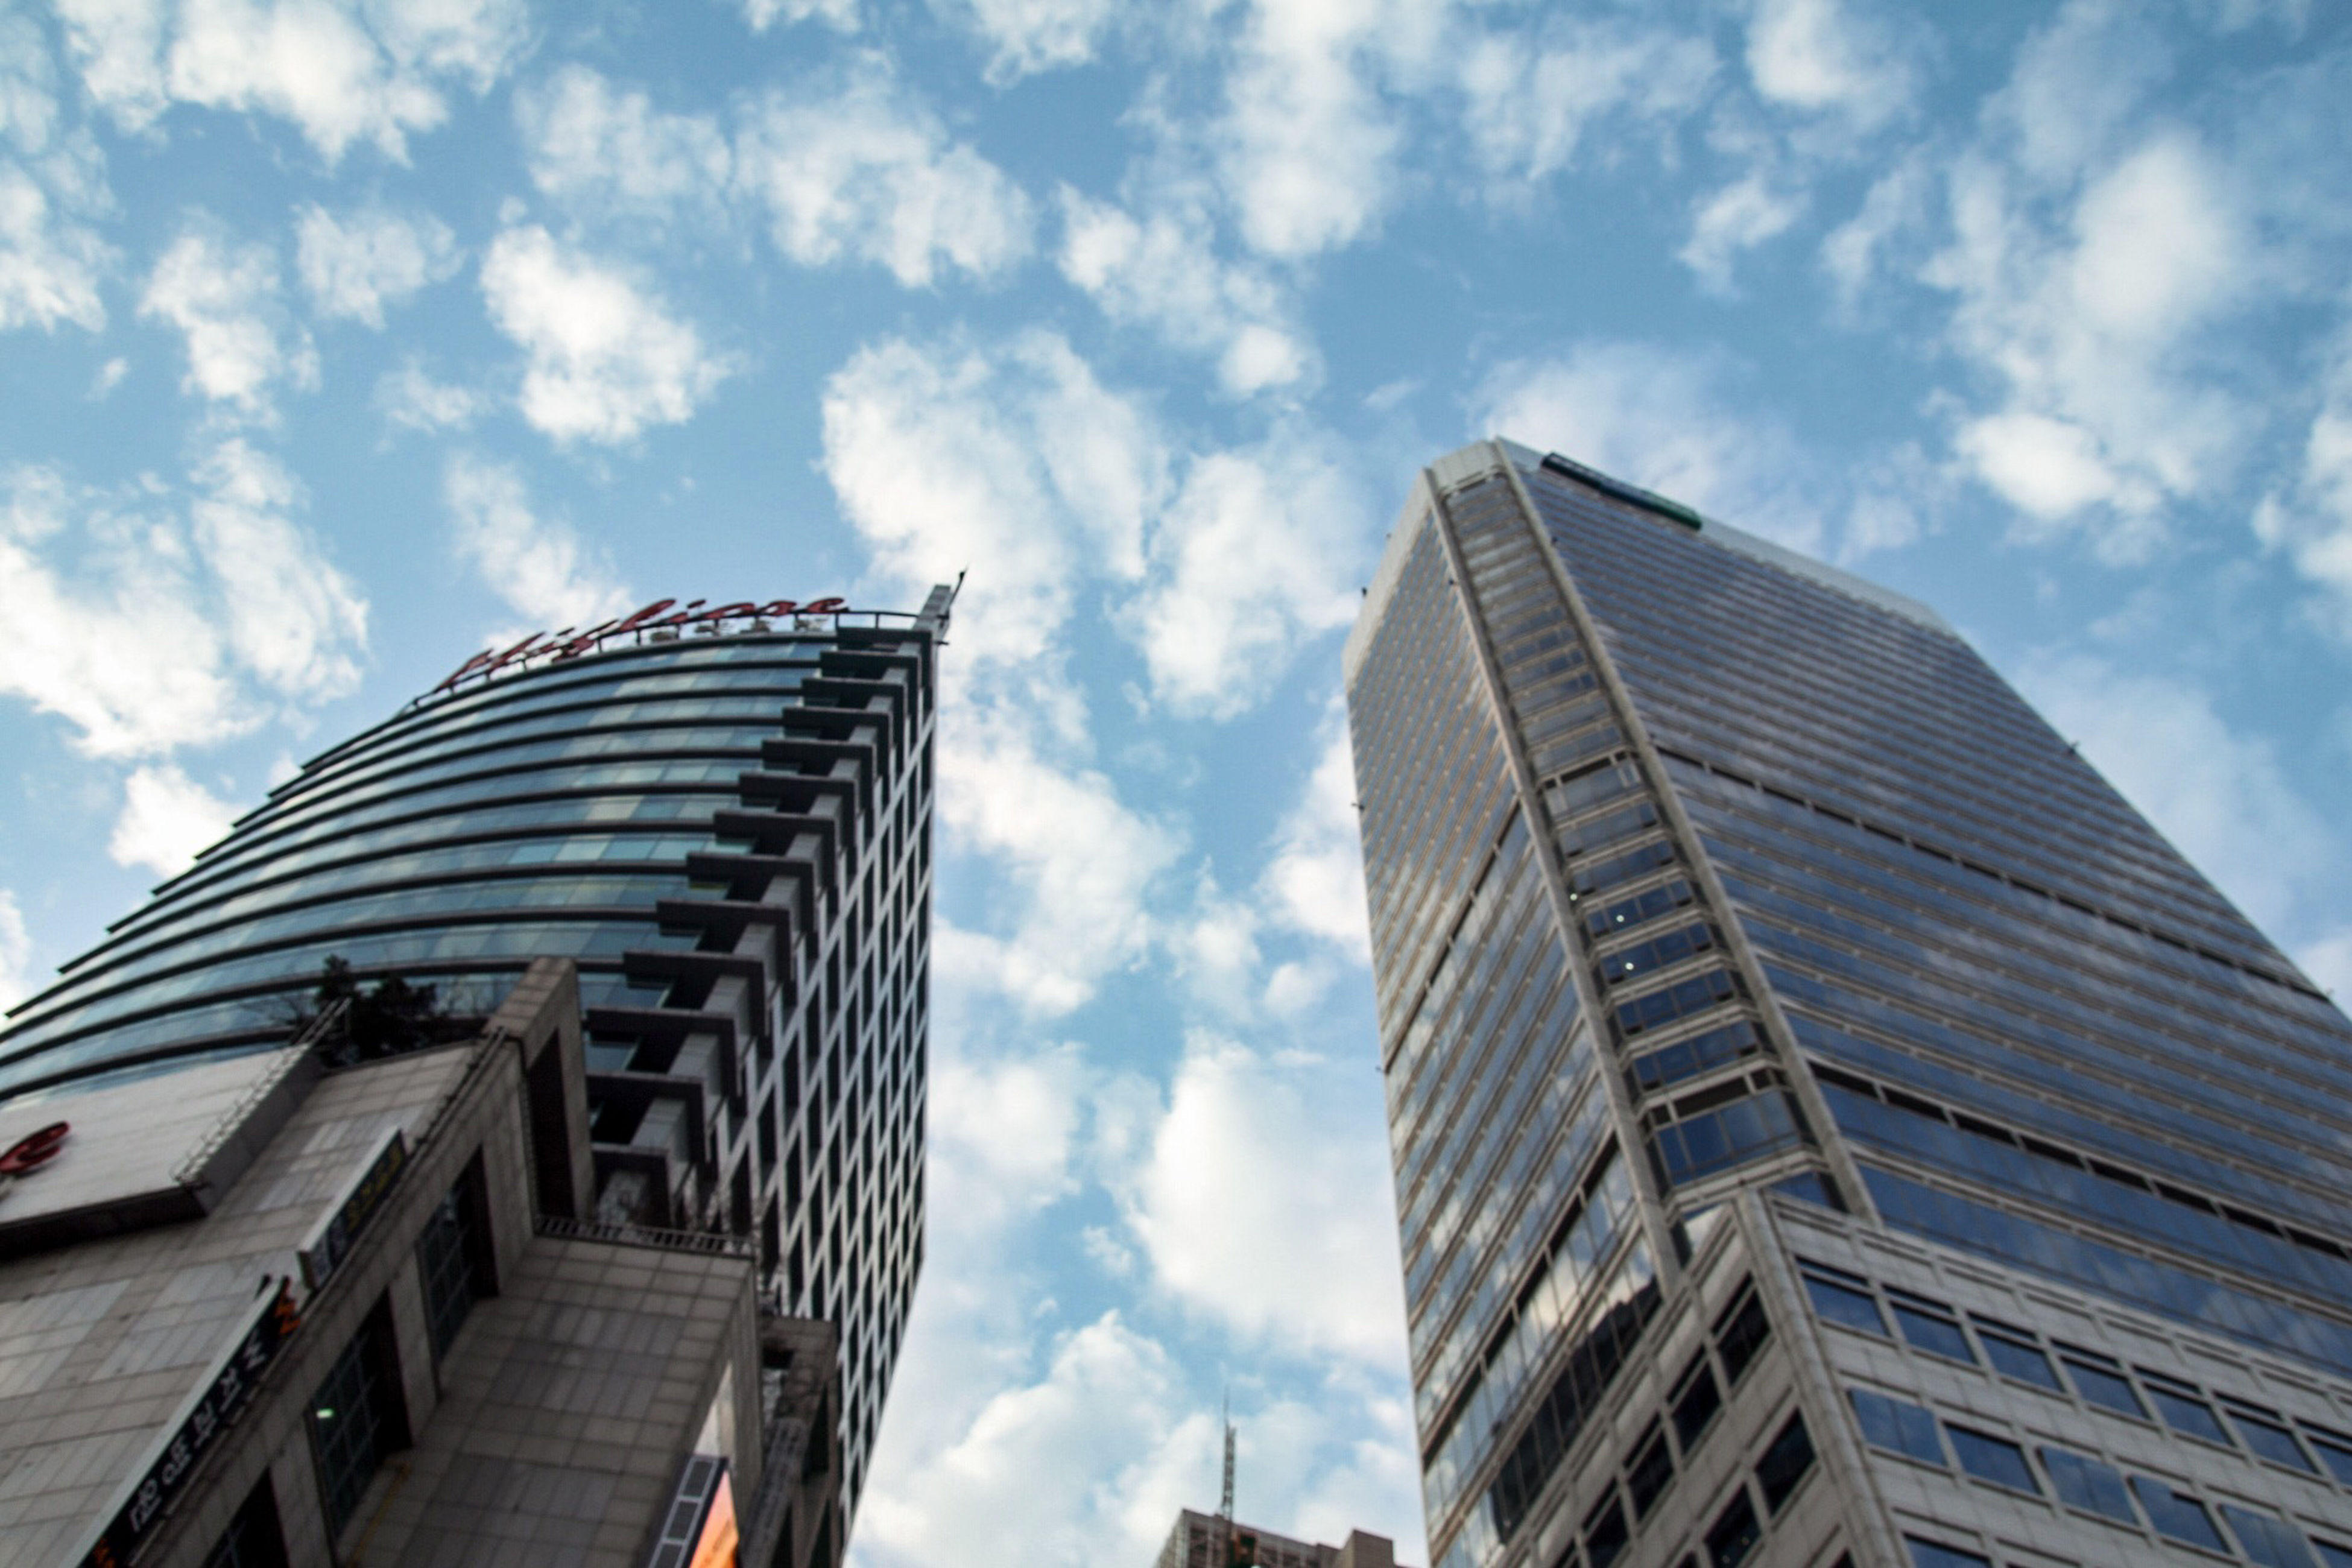 architecture, building exterior, built structure, low angle view, skyscraper, modern, office building, city, tall - high, sky, tower, cloud - sky, glass - material, building, reflection, cloud, tall, day, cloudy, outdoors